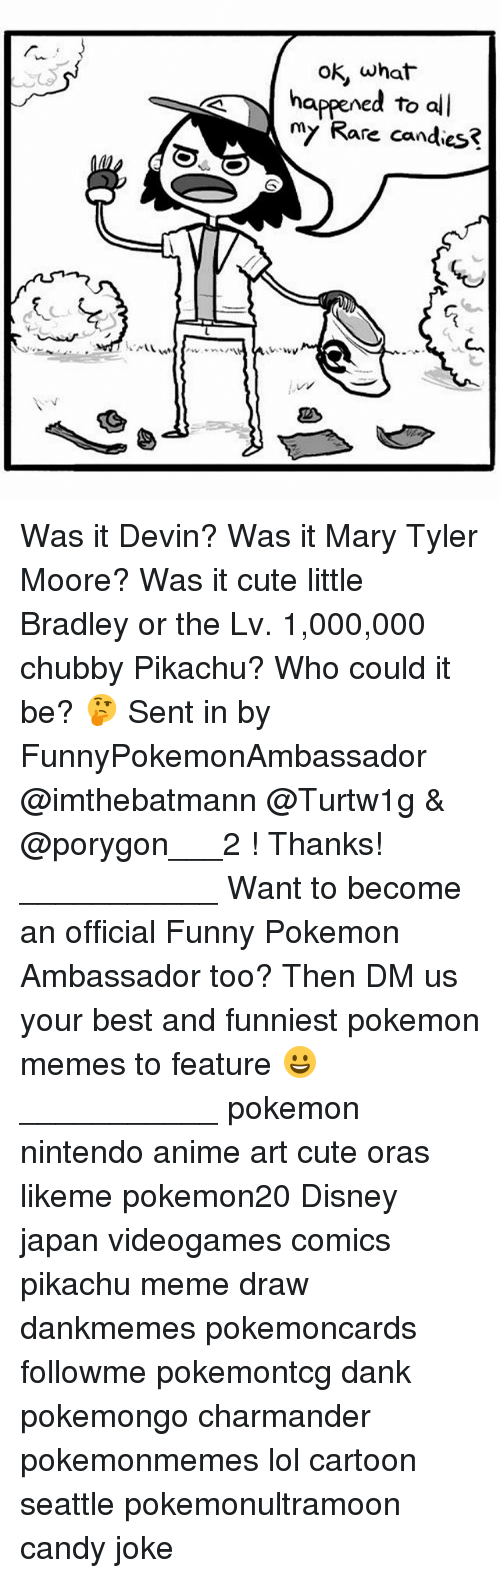 Anime, Candy, and Charmander: ok, what  oK, what  happened to all  my Rare candies? Was it Devin? Was it Mary Tyler Moore? Was it cute little Bradley or the Lv. 1,000,000 chubby Pikachu? Who could it be? 🤔 Sent in by FunnyPokemonAmbassador @imthebatmann @Turtw1g & @porygon___2 ! Thanks! ___________ Want to become an official Funny Pokemon Ambassador too? Then DM us your best and funniest pokemon memes to feature 😀 ___________ pokemon nintendo anime art cute oras likeme pokemon20 Disney japan videogames comics pikachu meme draw dankmemes pokemoncards followme pokemontcg dank pokemongo charmander pokemonmemes lol cartoon seattle pokemonultramoon candy joke